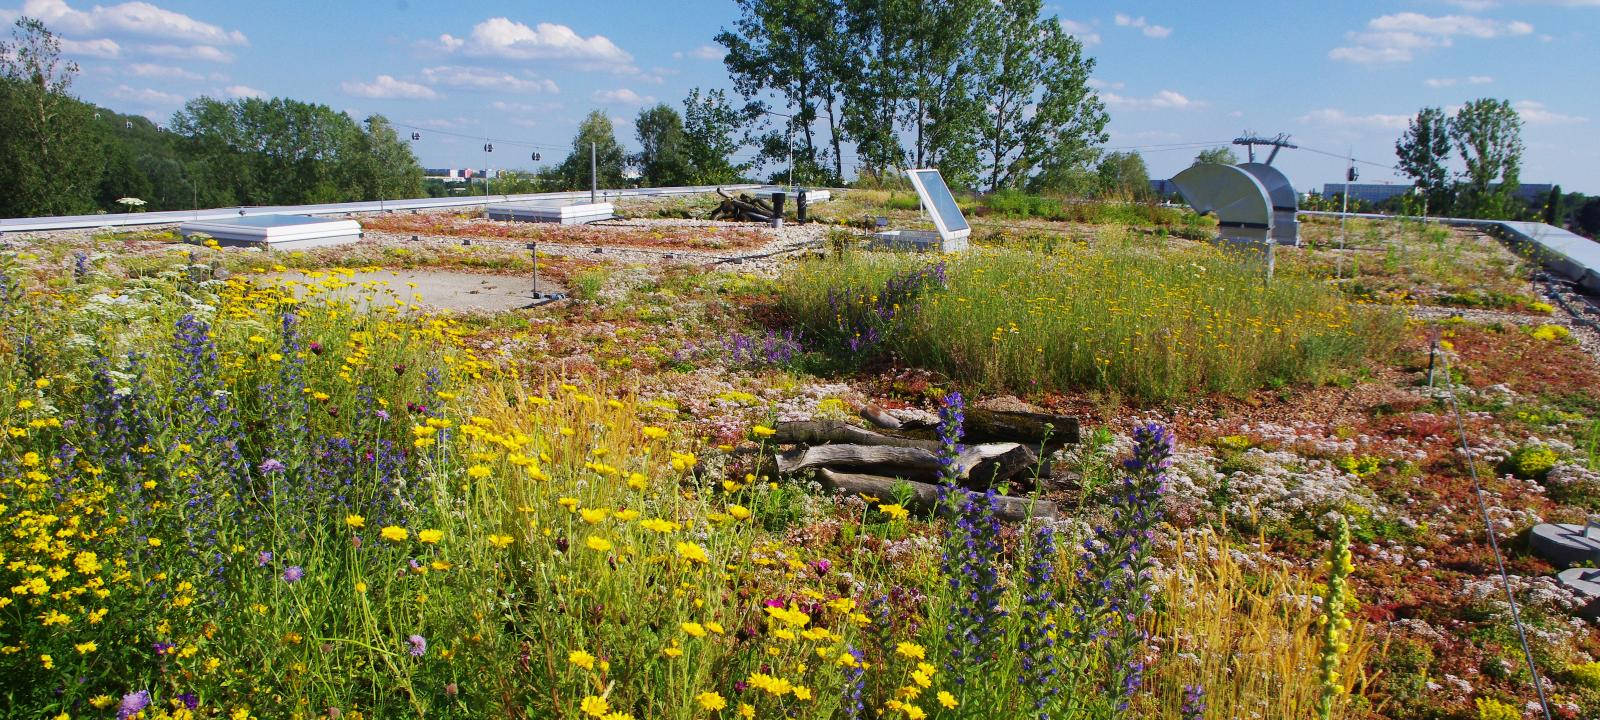 Biodiversity Green Roof Zinco Arabia Green Roof Systems